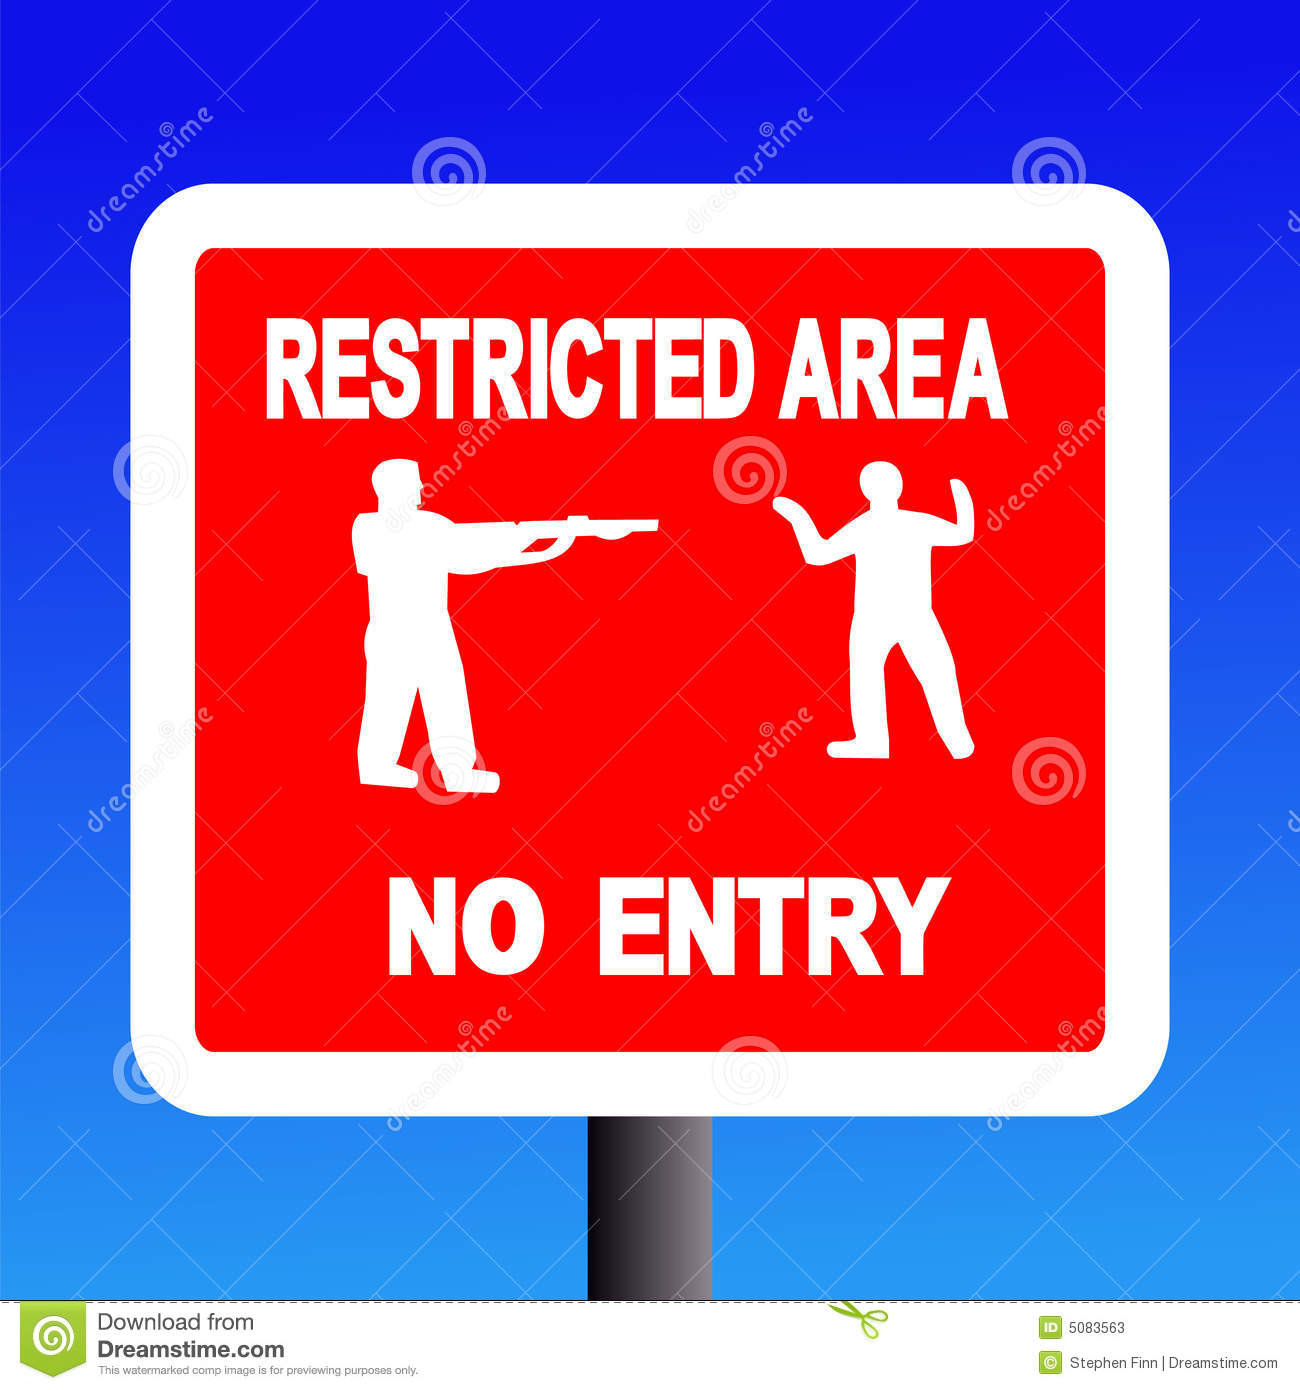 Restricted Area Sign Stock Photos.